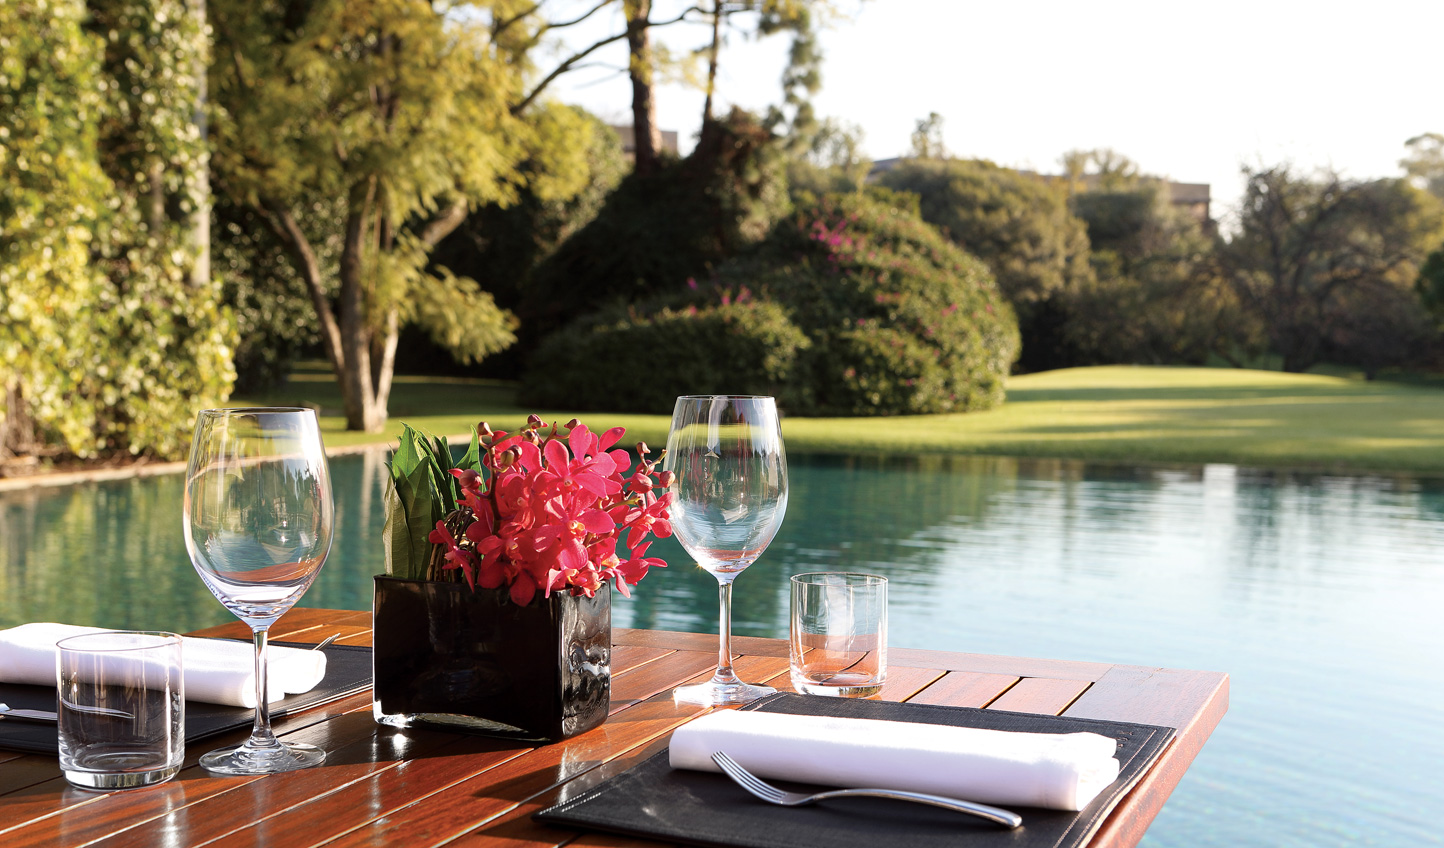 Enjoy a light lunch on the Terrace